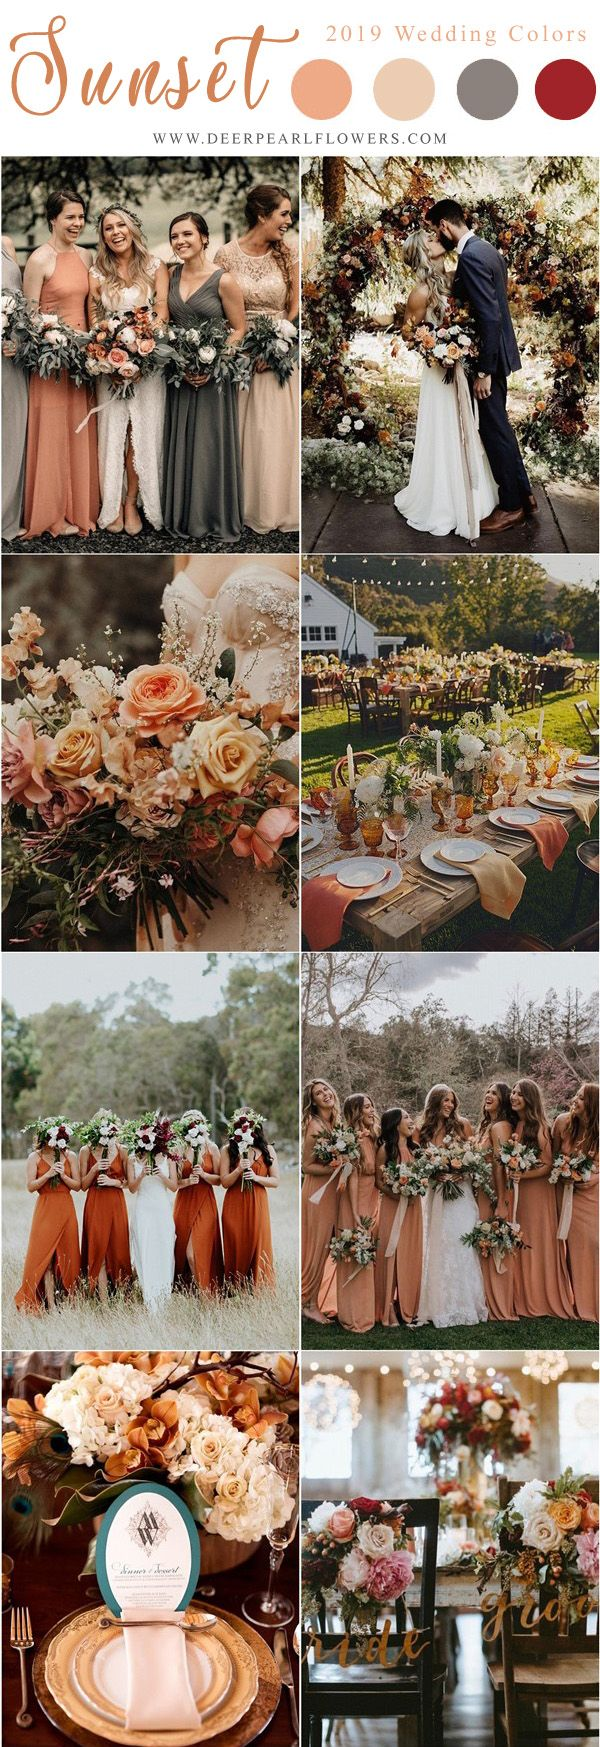 Top 10 Ideas for Wedding Color Schemes for 2019 Trends #Wedding Color Schemes